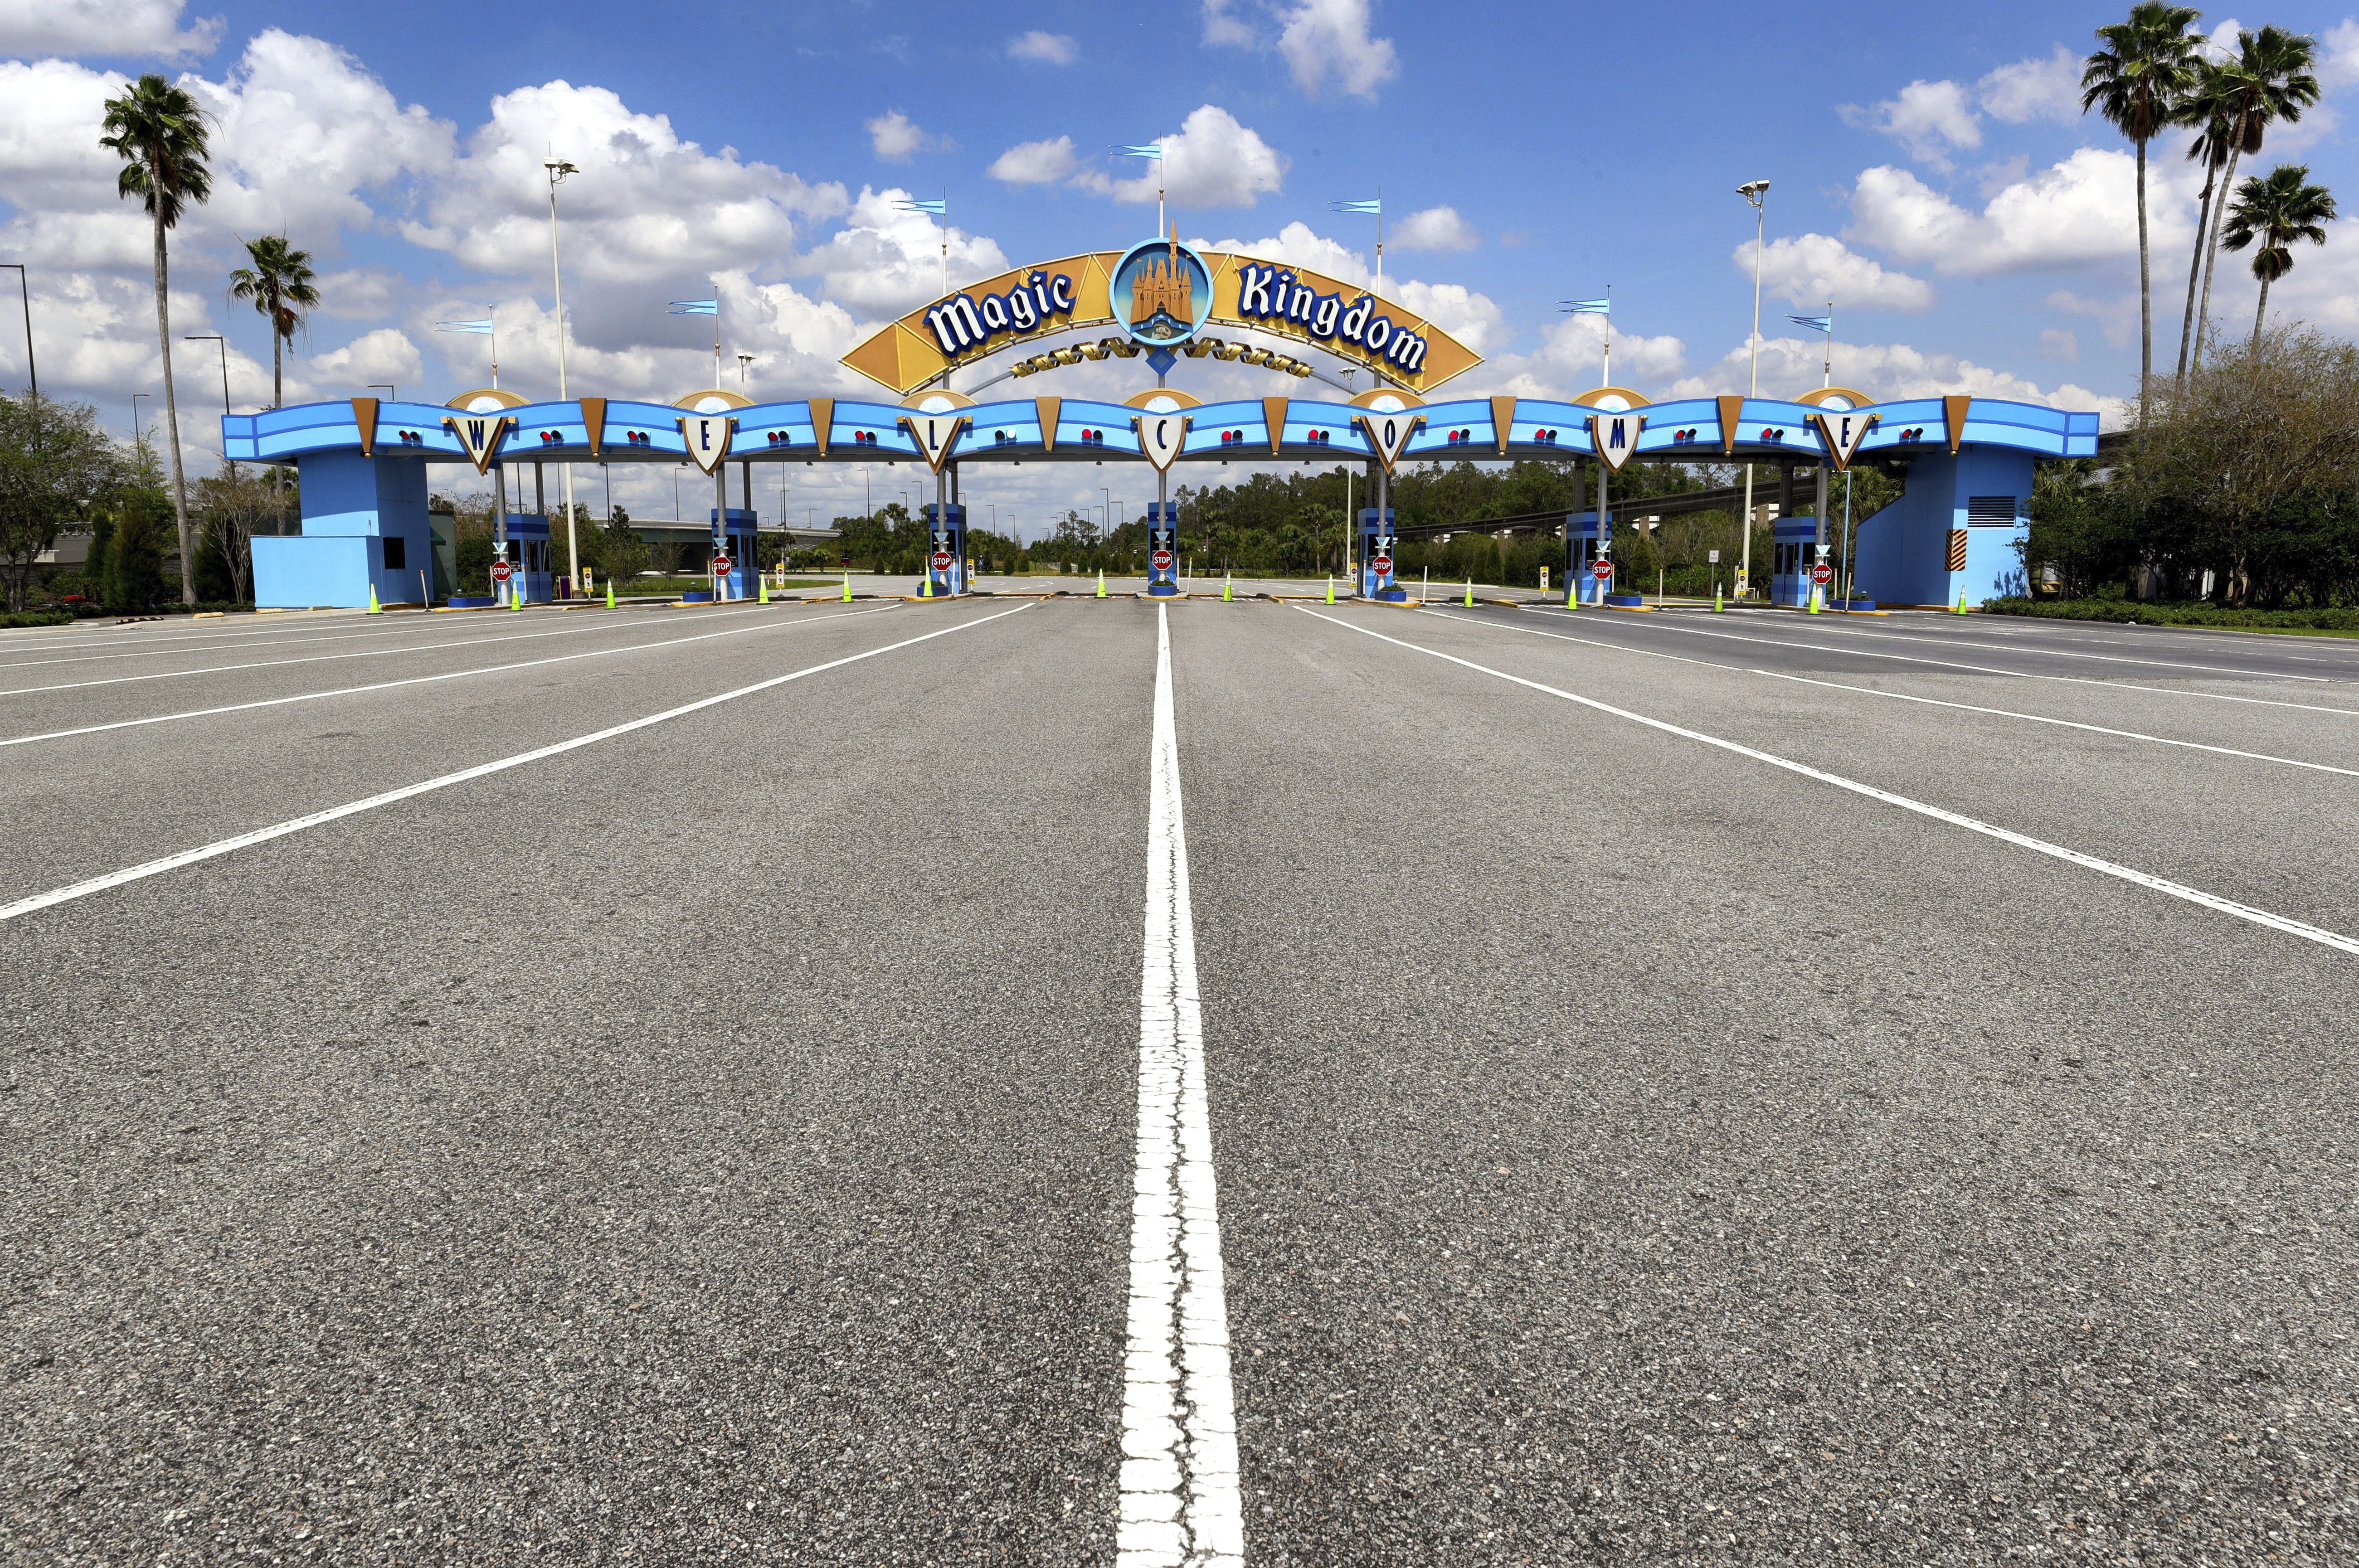 In this March 24, 2020, file photo, lanes leading to the parking plaza entrance of Walt Disney World's Magic Kingdom sit empty during its second week of closure in response to the coronavirus pandemic in Orlando.